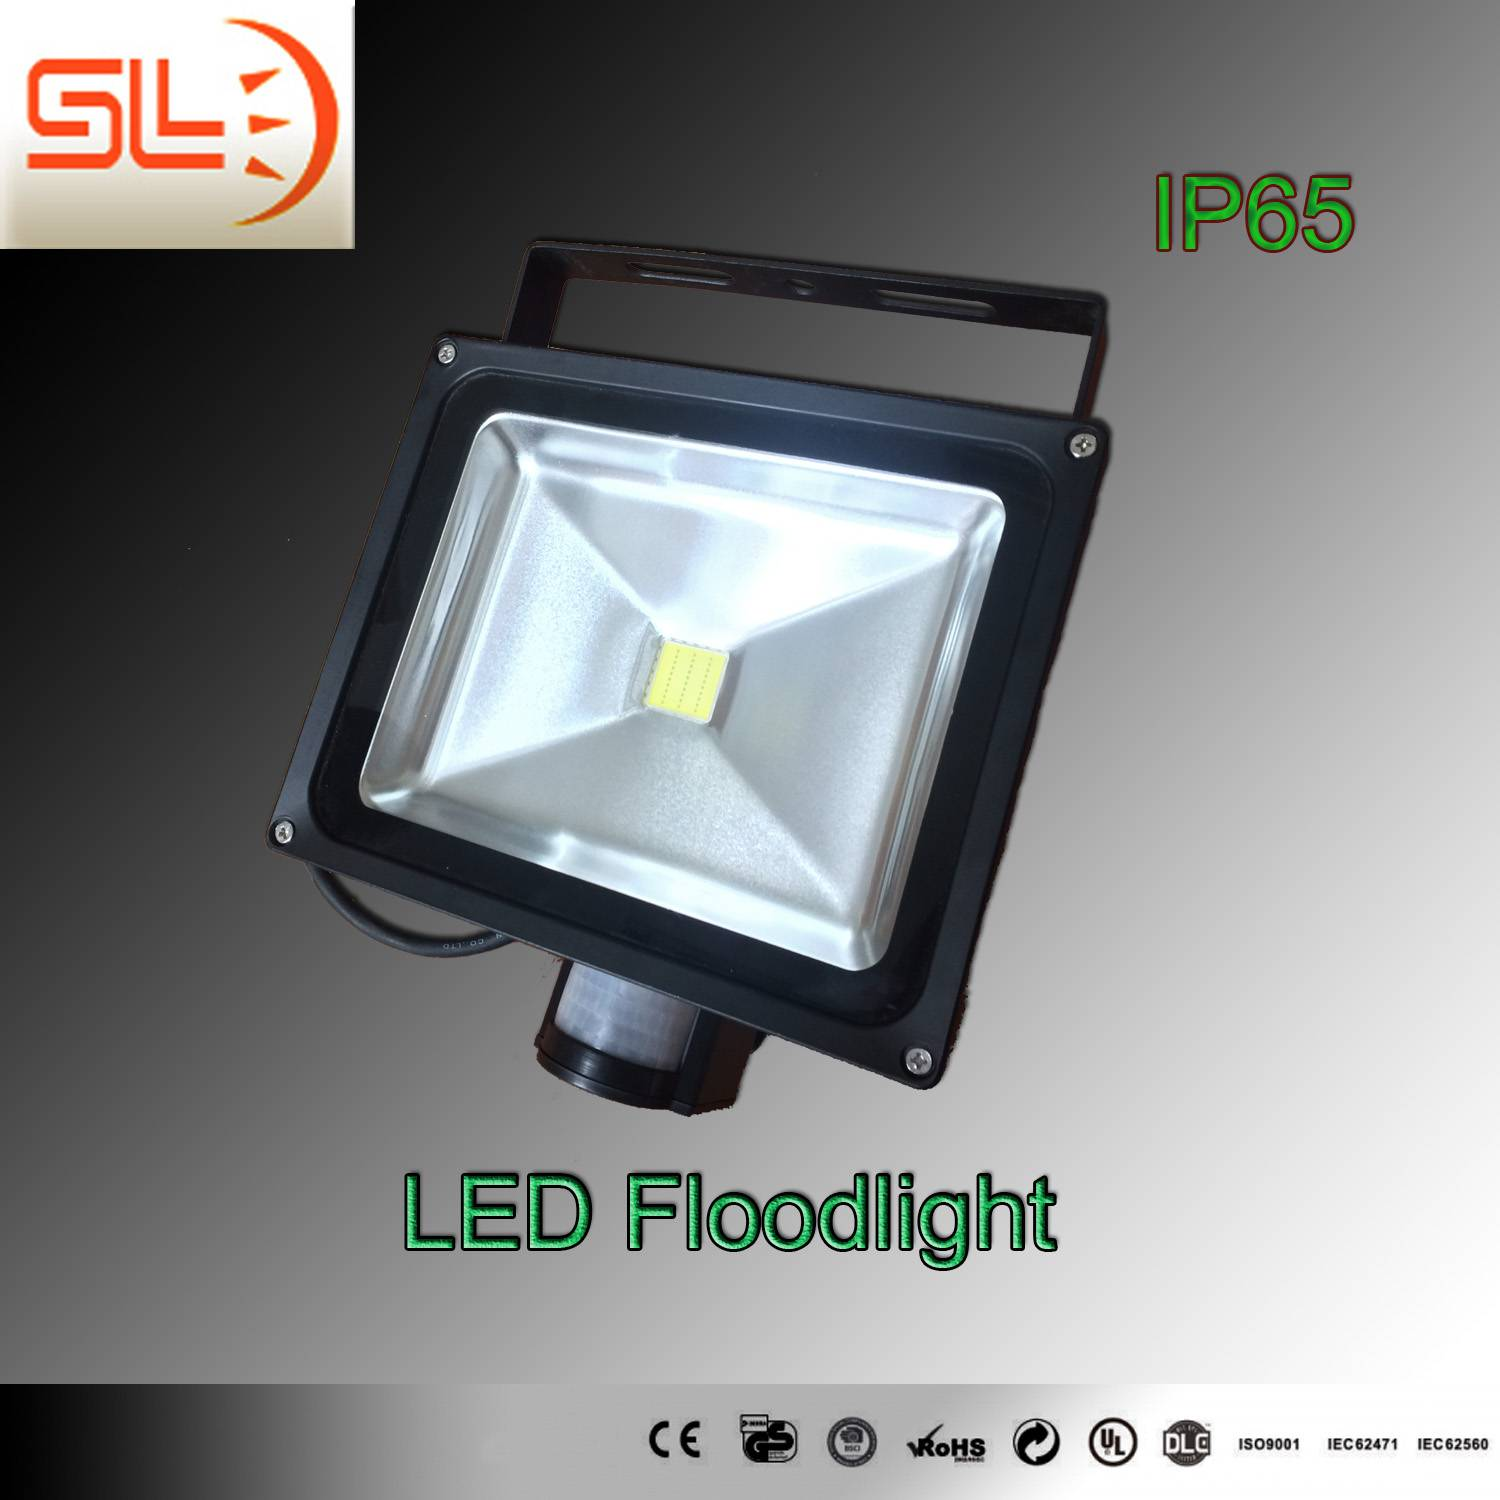 IP65 LED Flood Light with CE